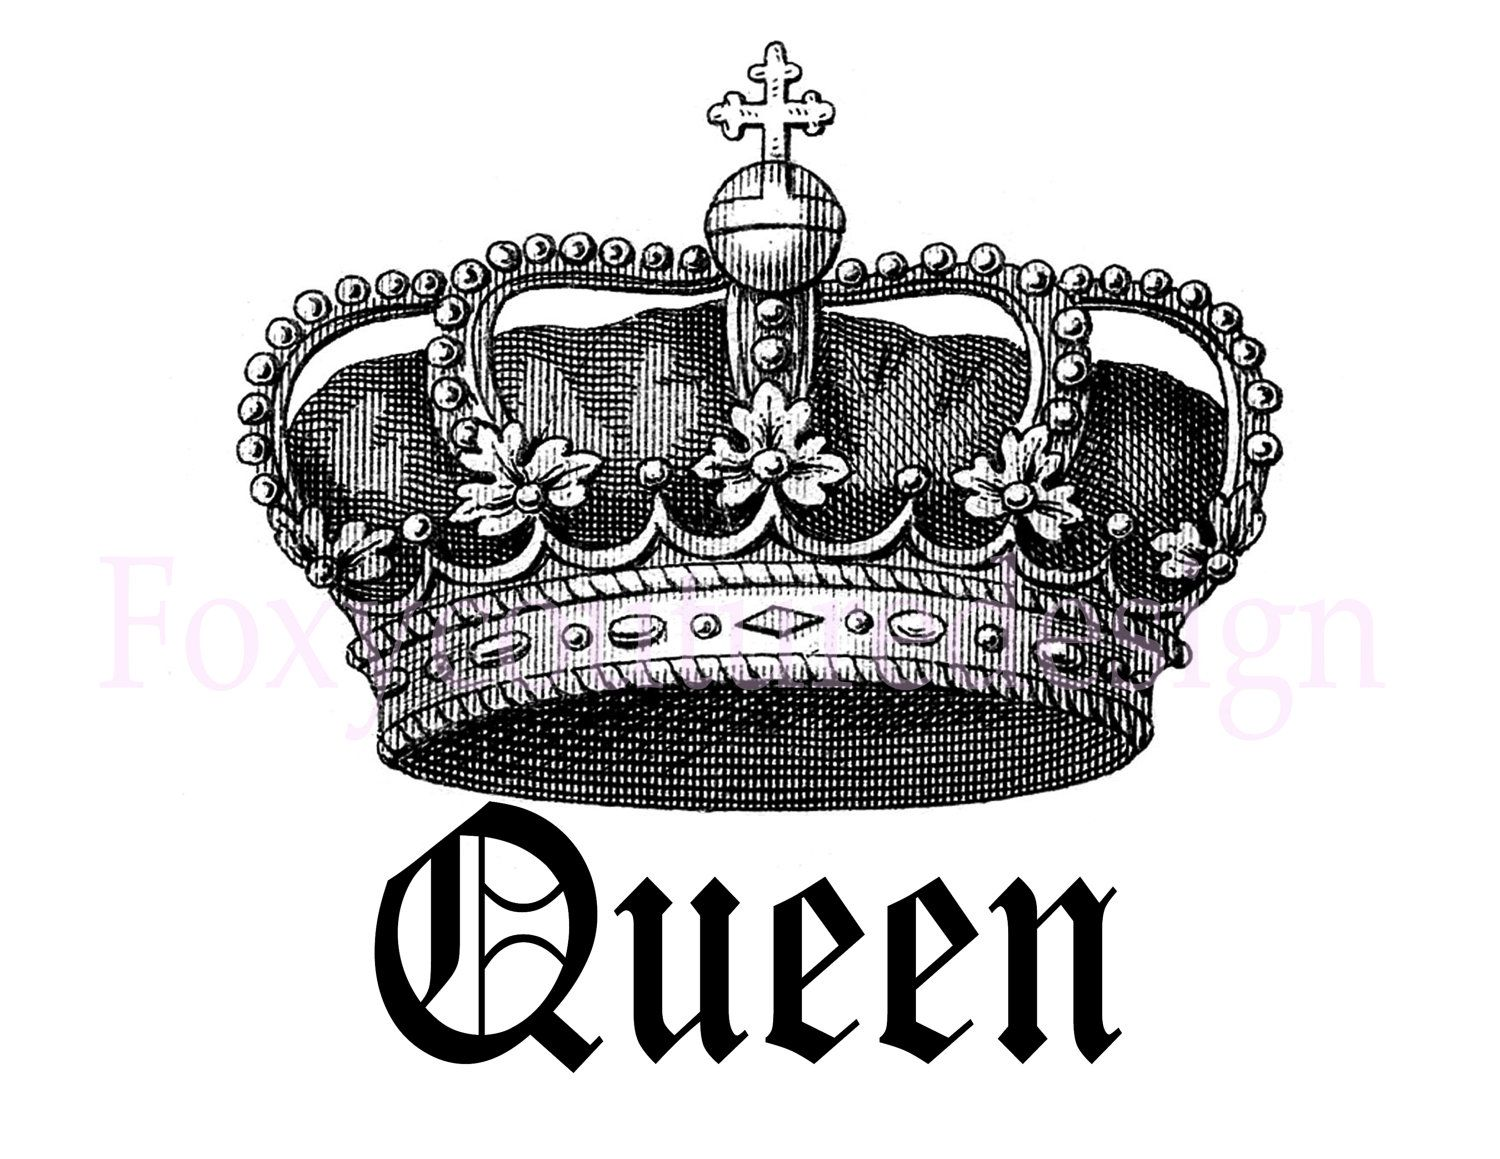 Crown tattoo on tumblr - Use The Form Below To Delete This Black And White King Crown Clip Art Image From